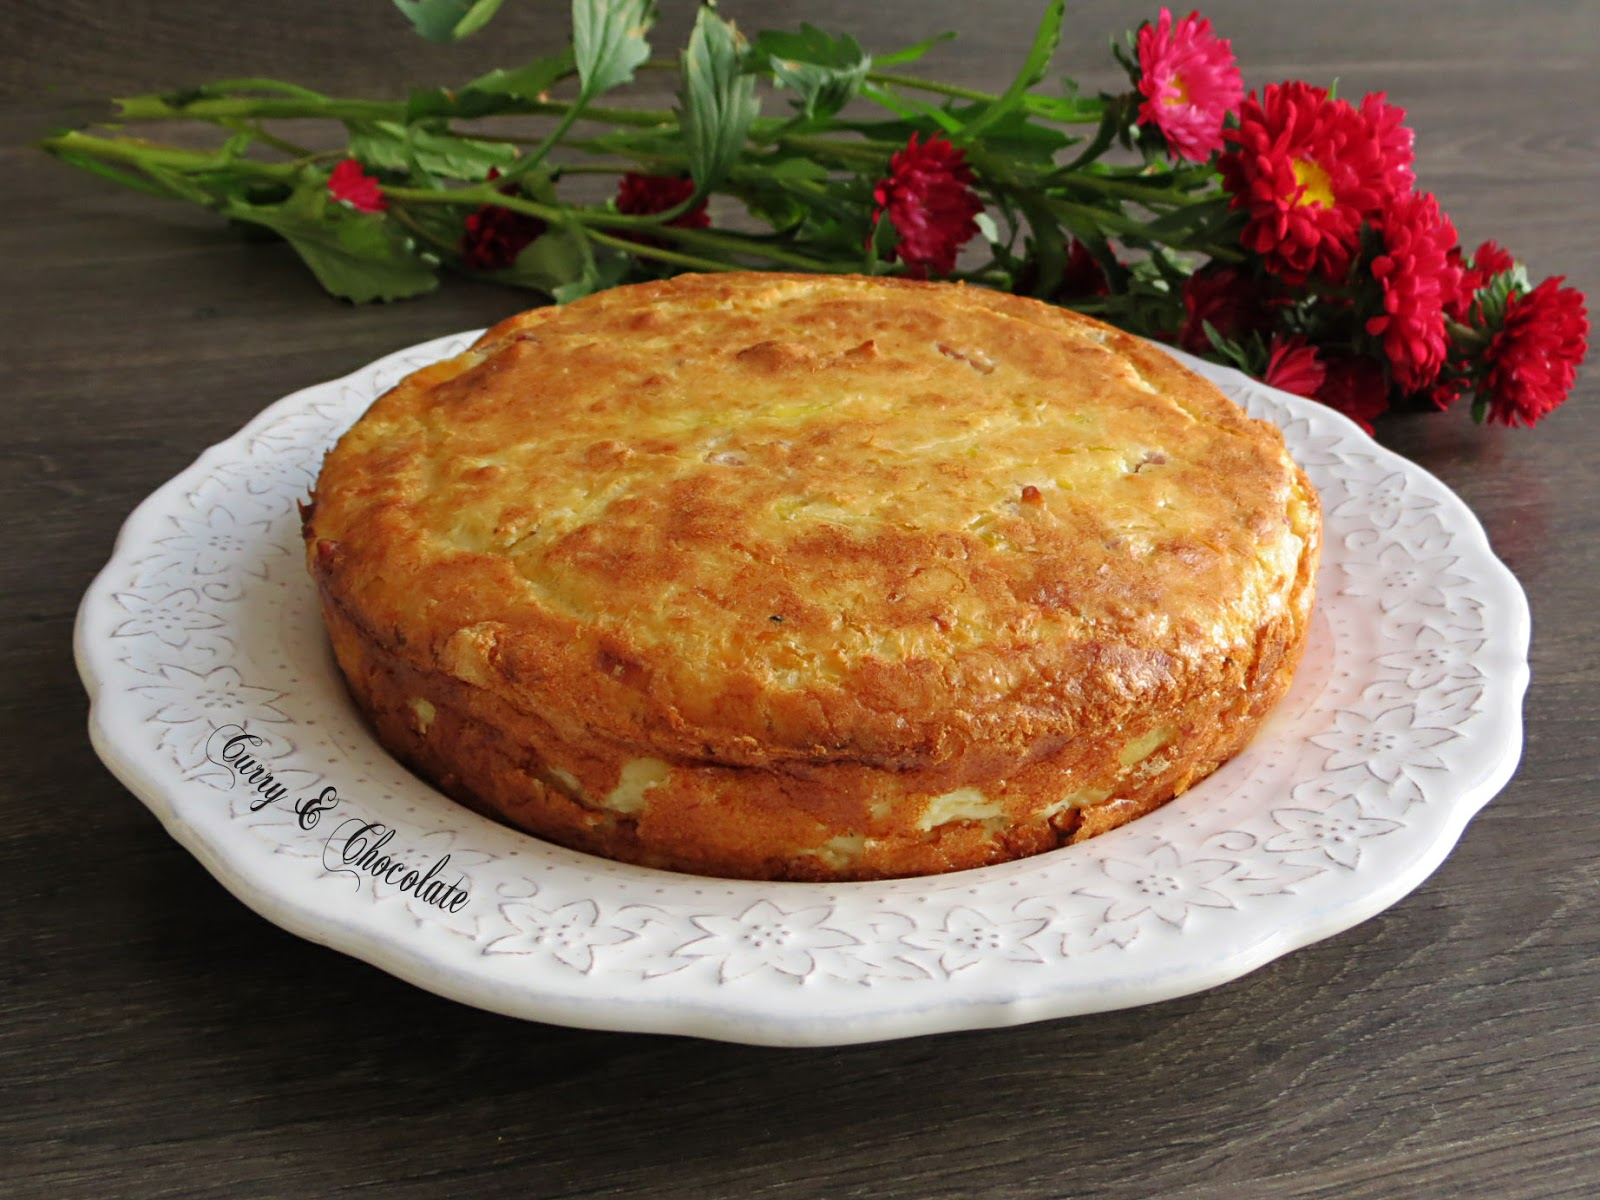 ... queso viejo, puerro y bacon – Salty cake with cheese, leek and bacon